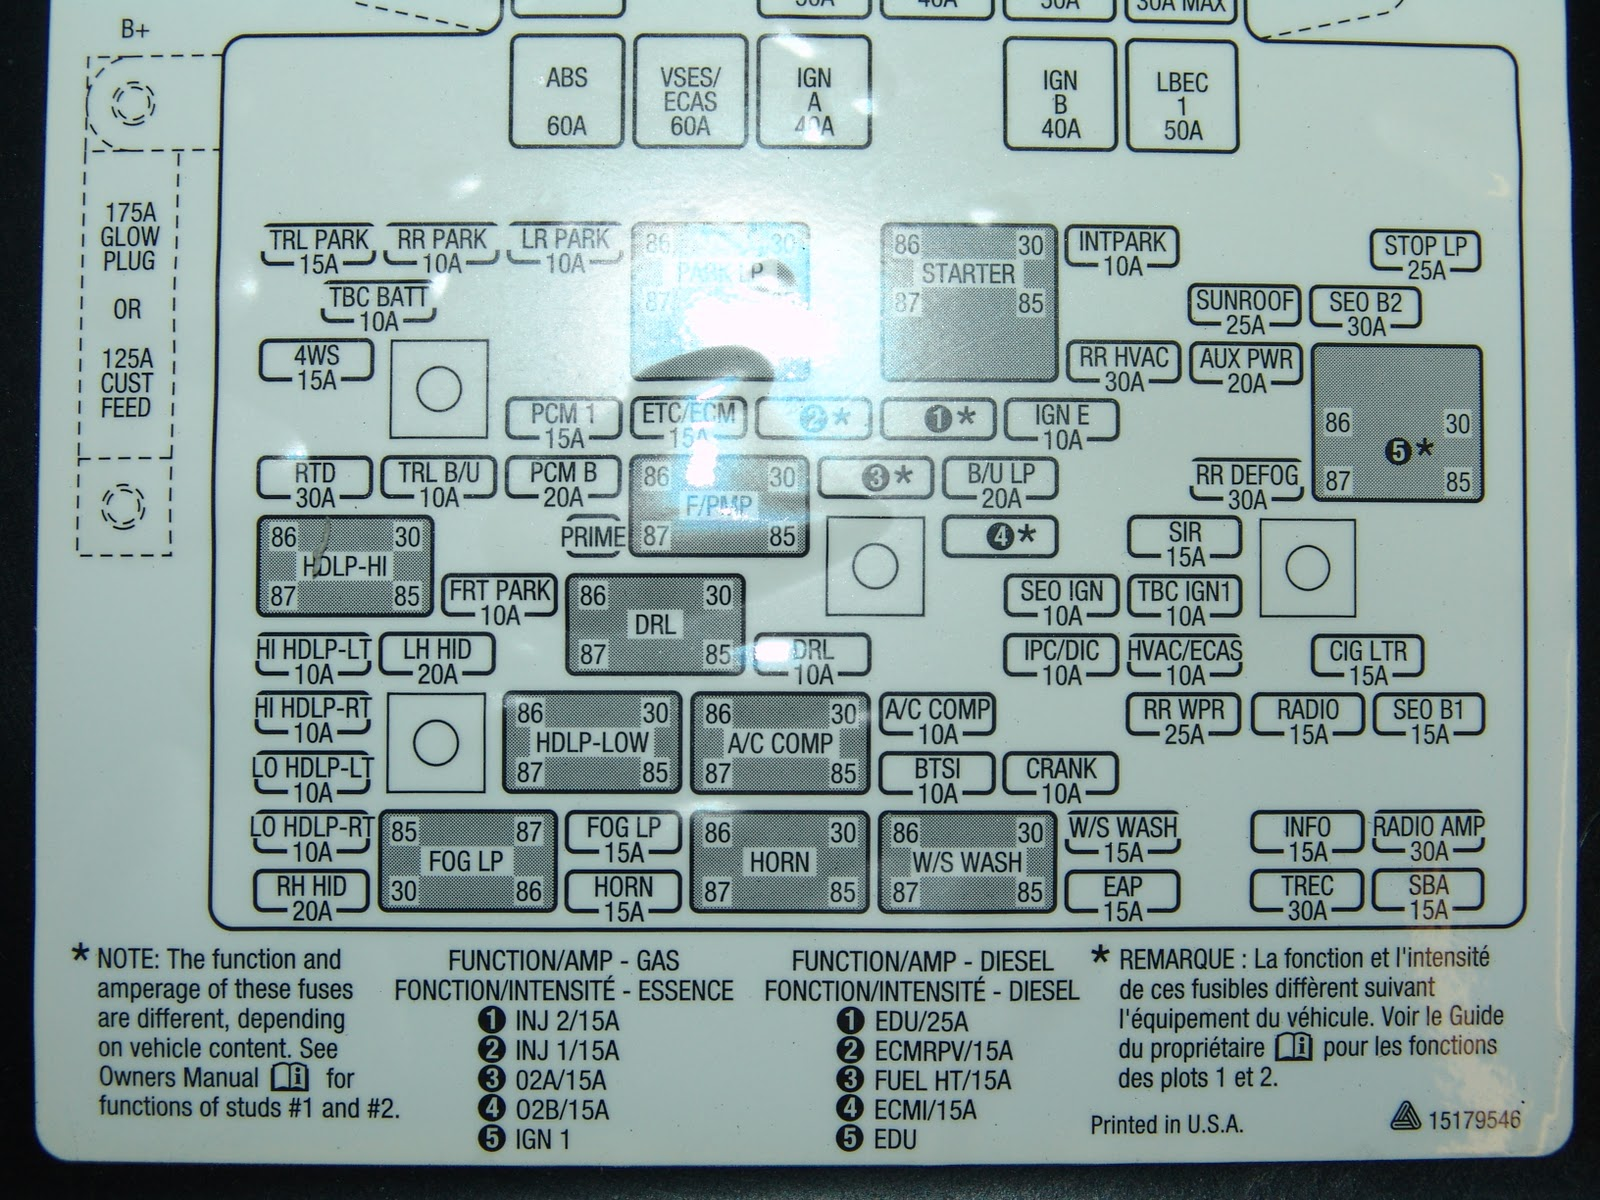 2006 Kenworth Fuse Panel Diagram Trusted Wiring Diagrams T800 Circuit Symbols U2022